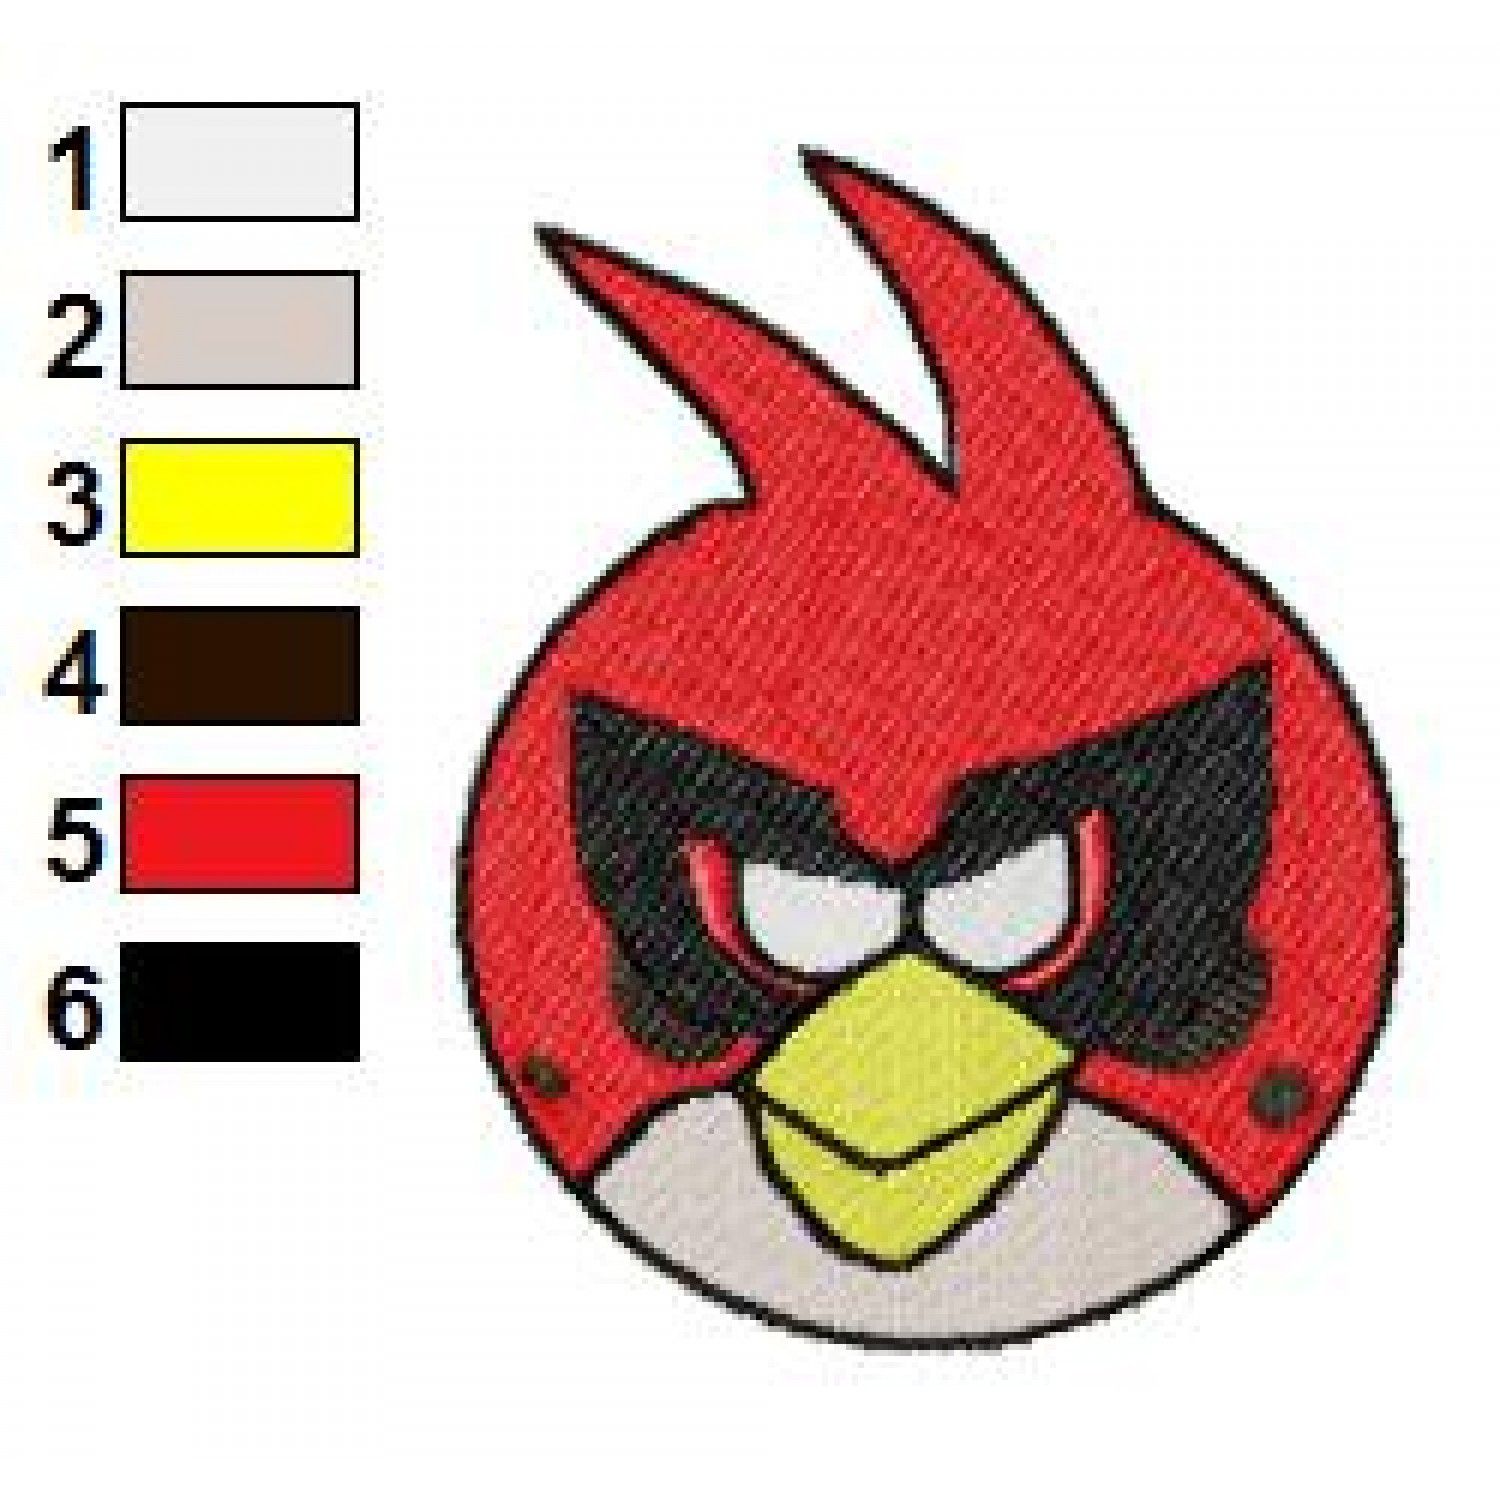 Angry birds space embroidery design 13 for Space embroidery patterns